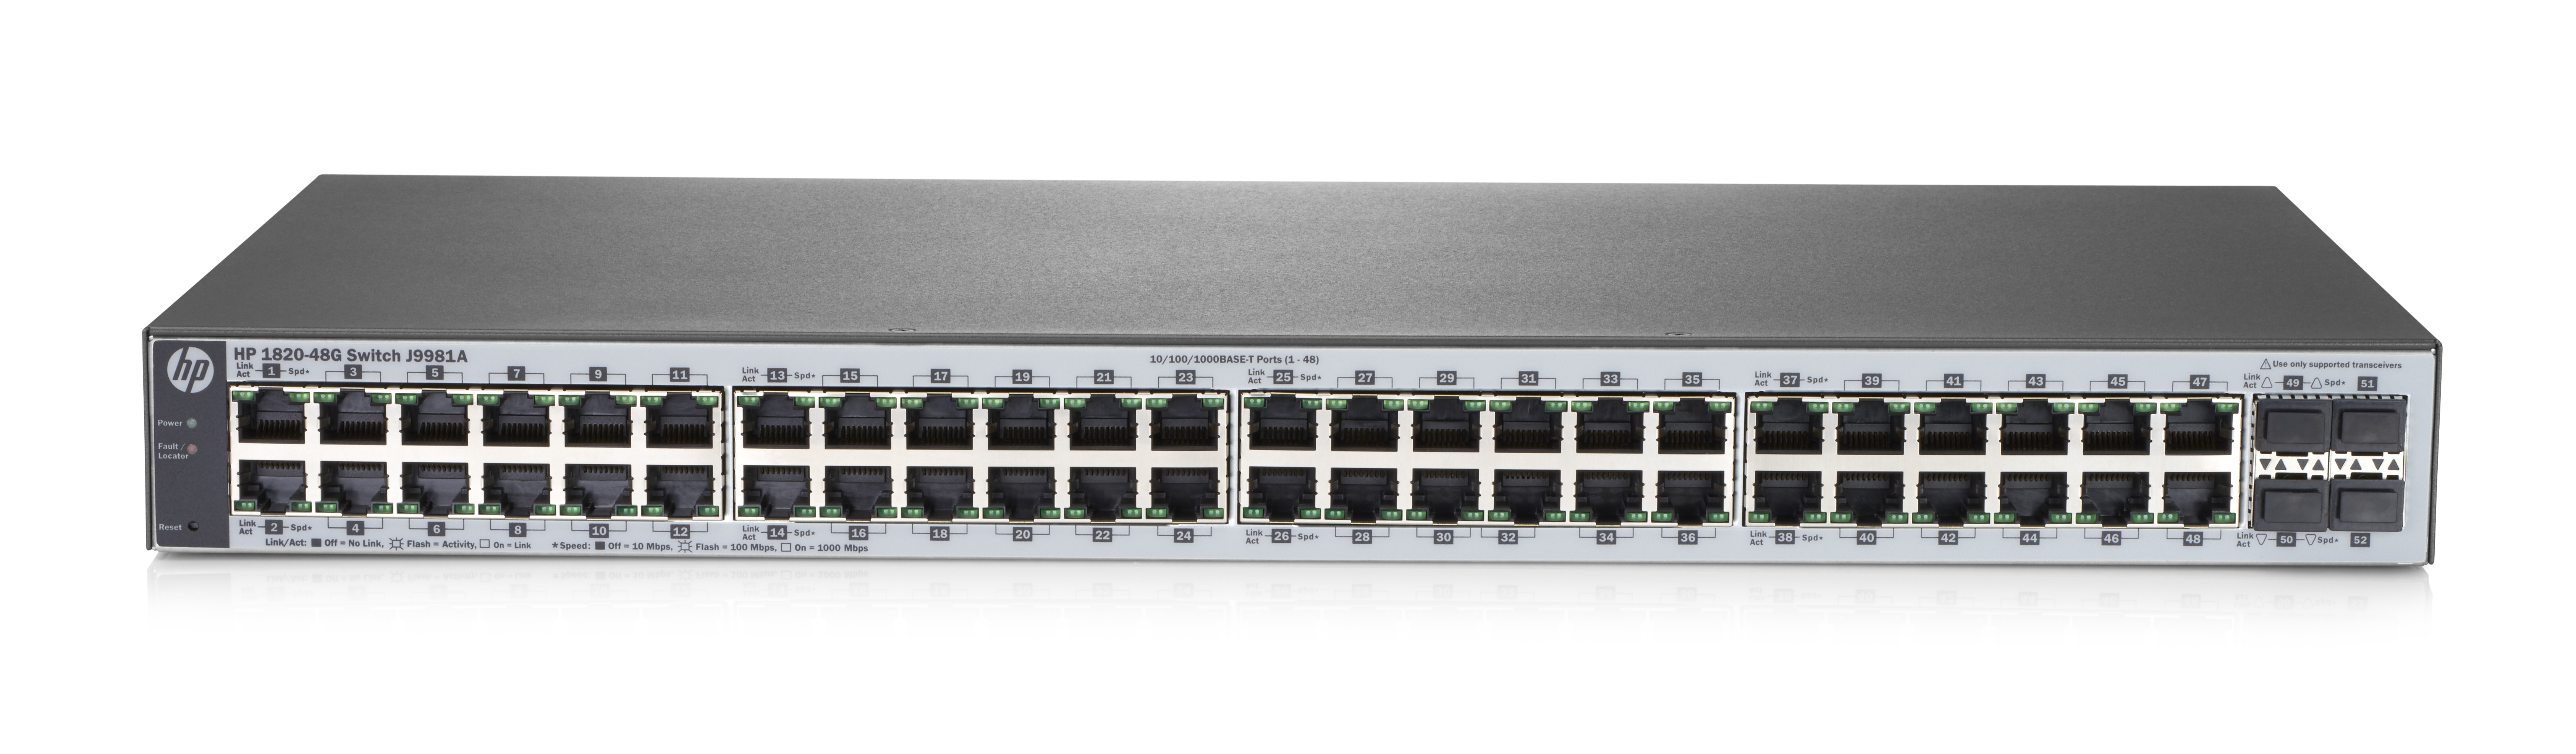 Hpe - An Aruba Of Cnc Switch(i5) Hpe 1820 48g Switch                 Hp 1820-48g Switch               In J9981a